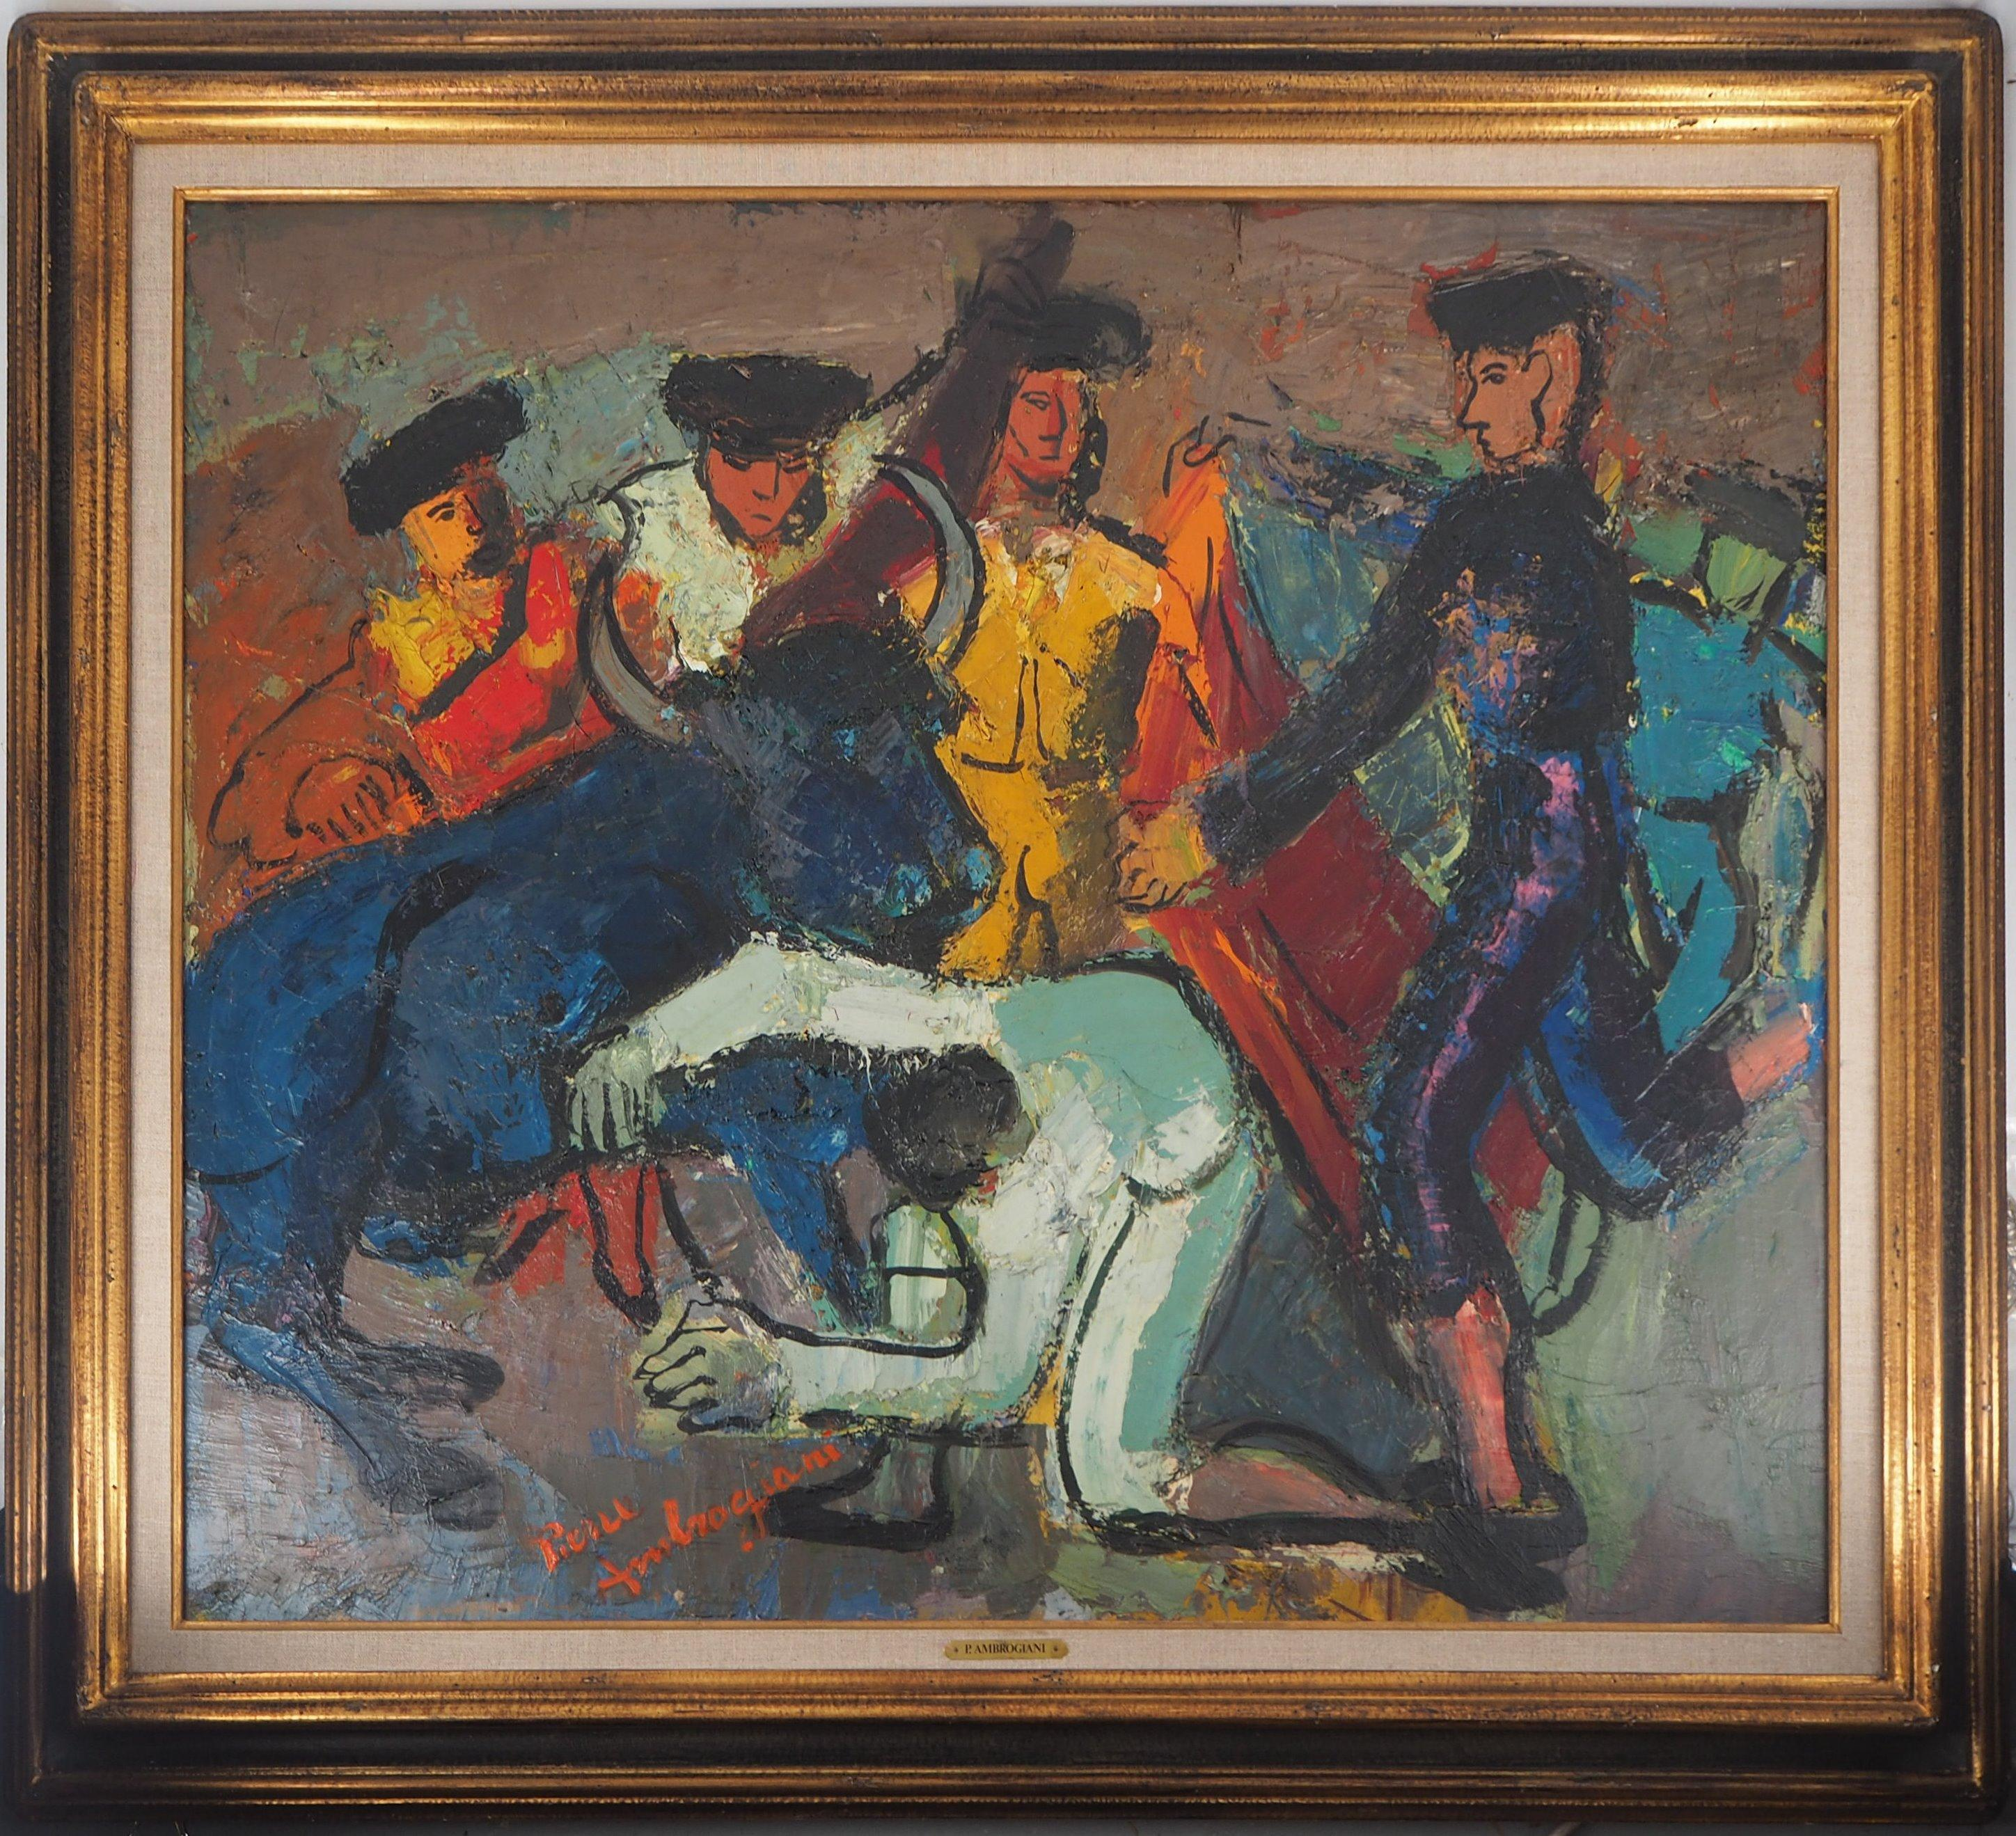 Torero and Bull Entrance - Tall original oil on canvas, Signed and Framed